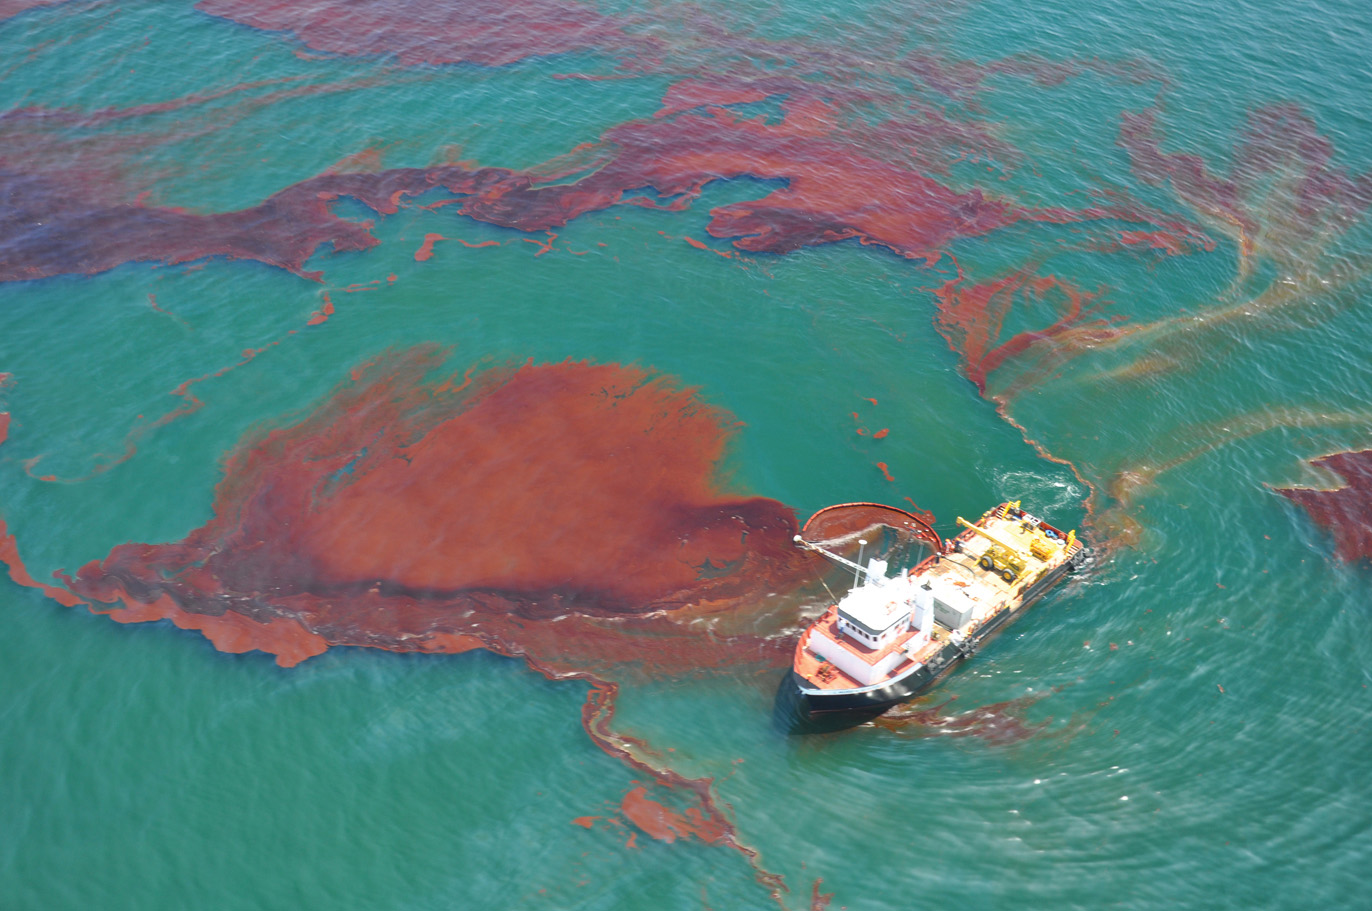 Oil spill in the gulf pictures